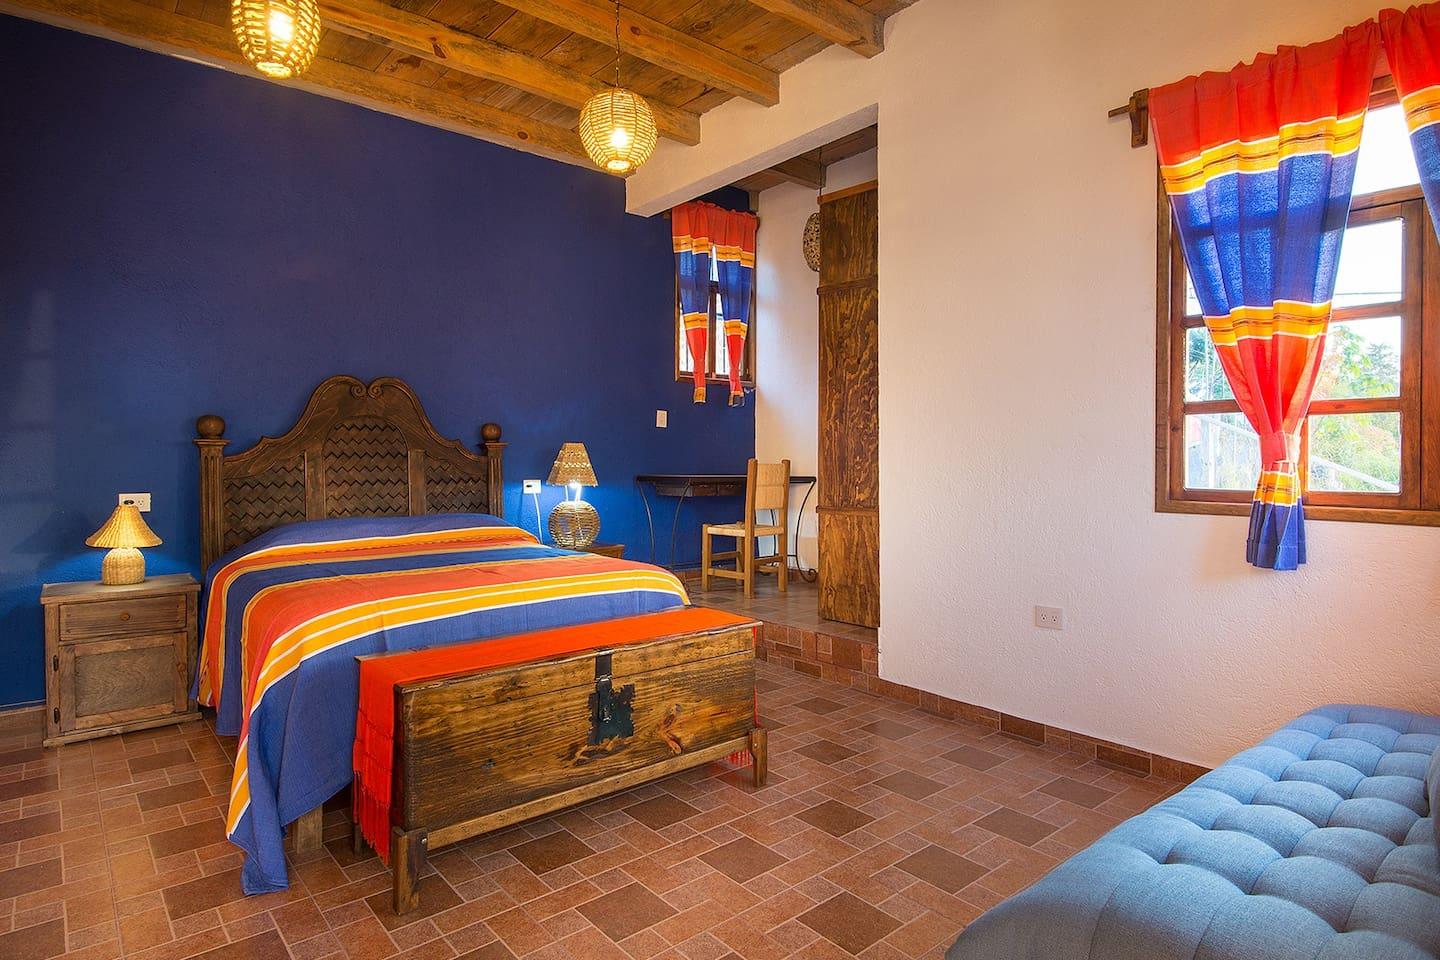 Private rustic suite with the local style of Pátzcuaro and surroundings